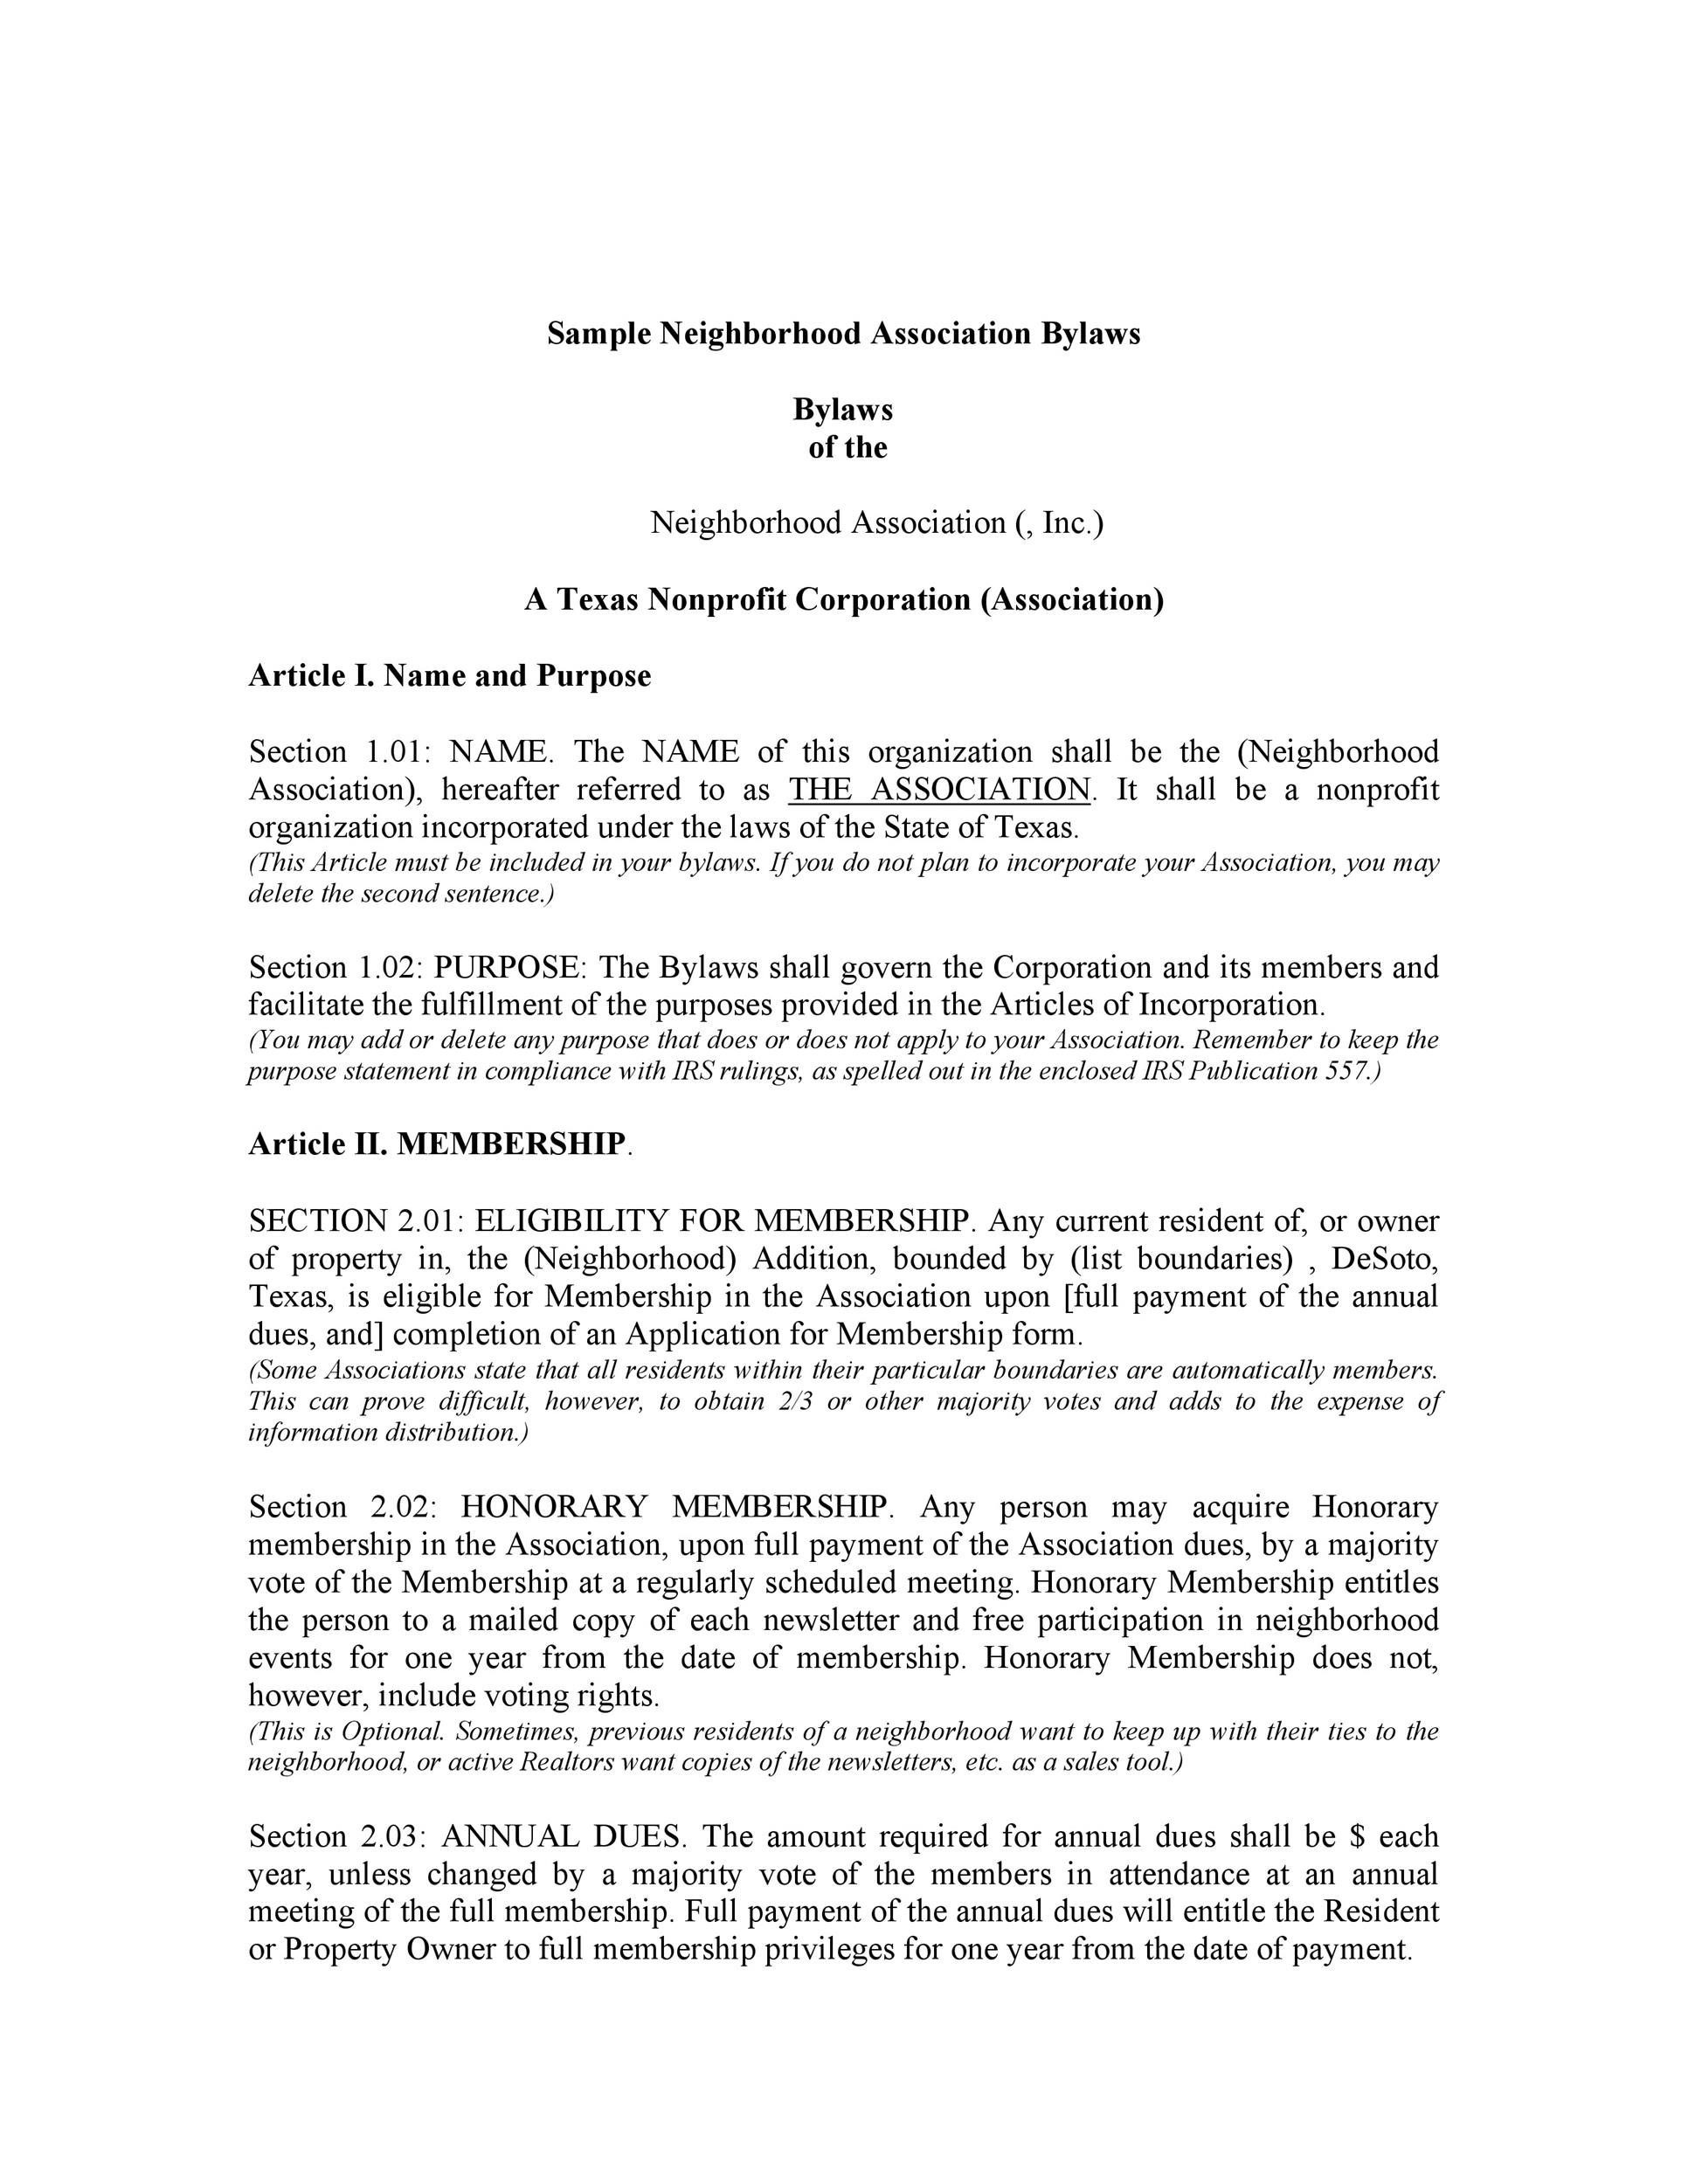 50 Simple Corporate Bylaws Templates  Samples ᐅ Template Lab